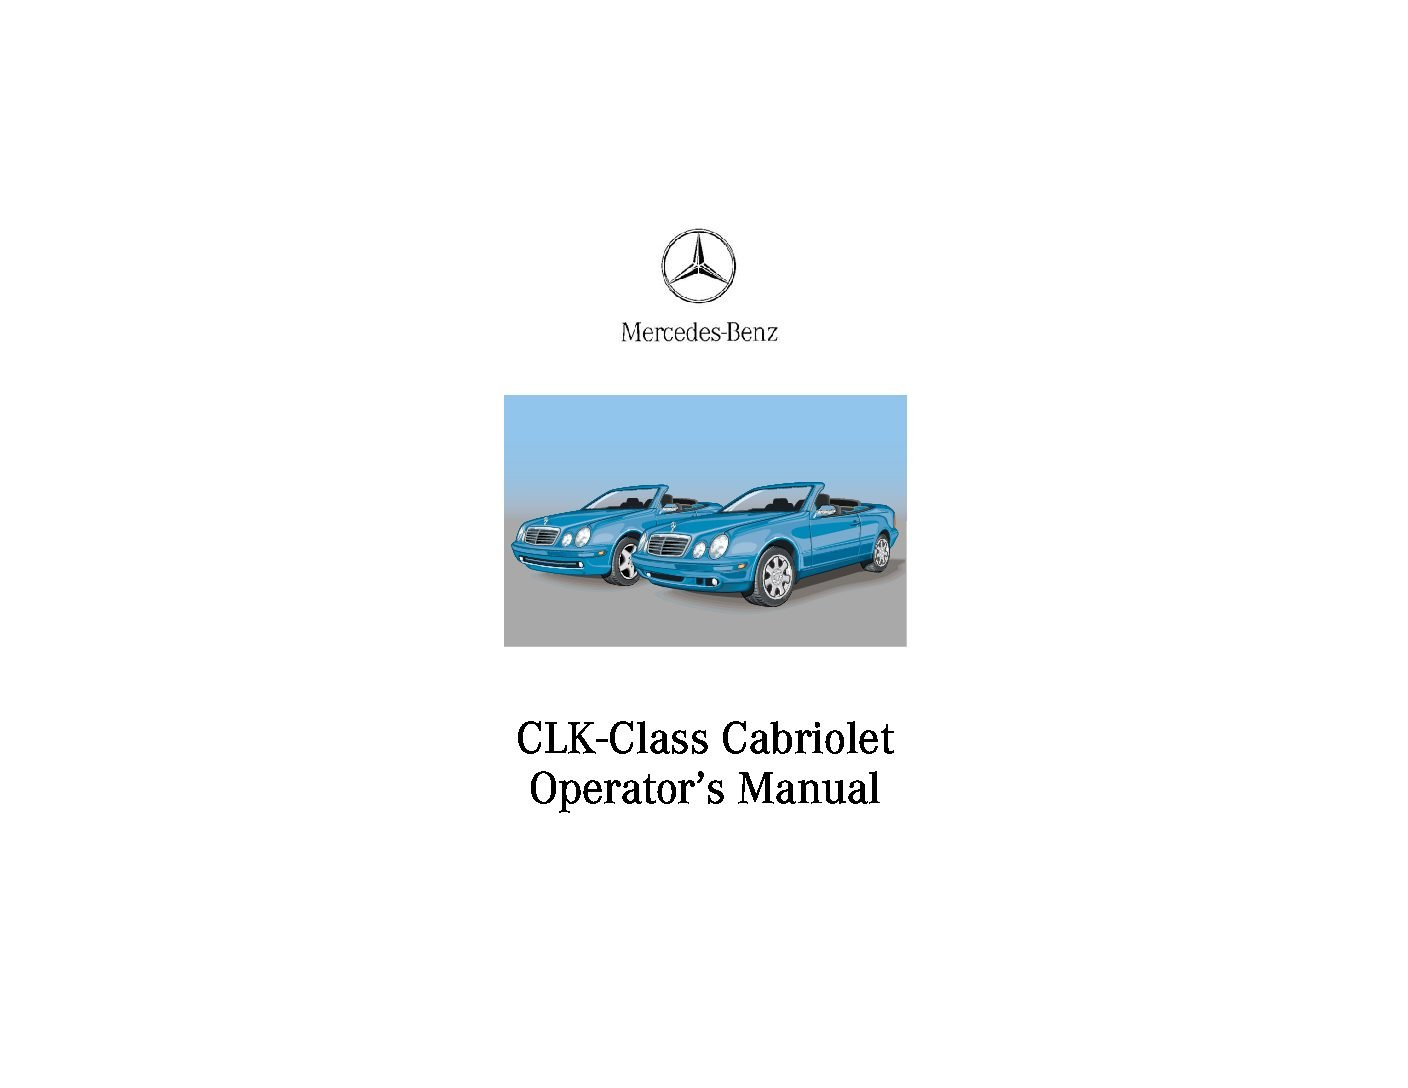 mercedes benz clk class cabriolet owners manual